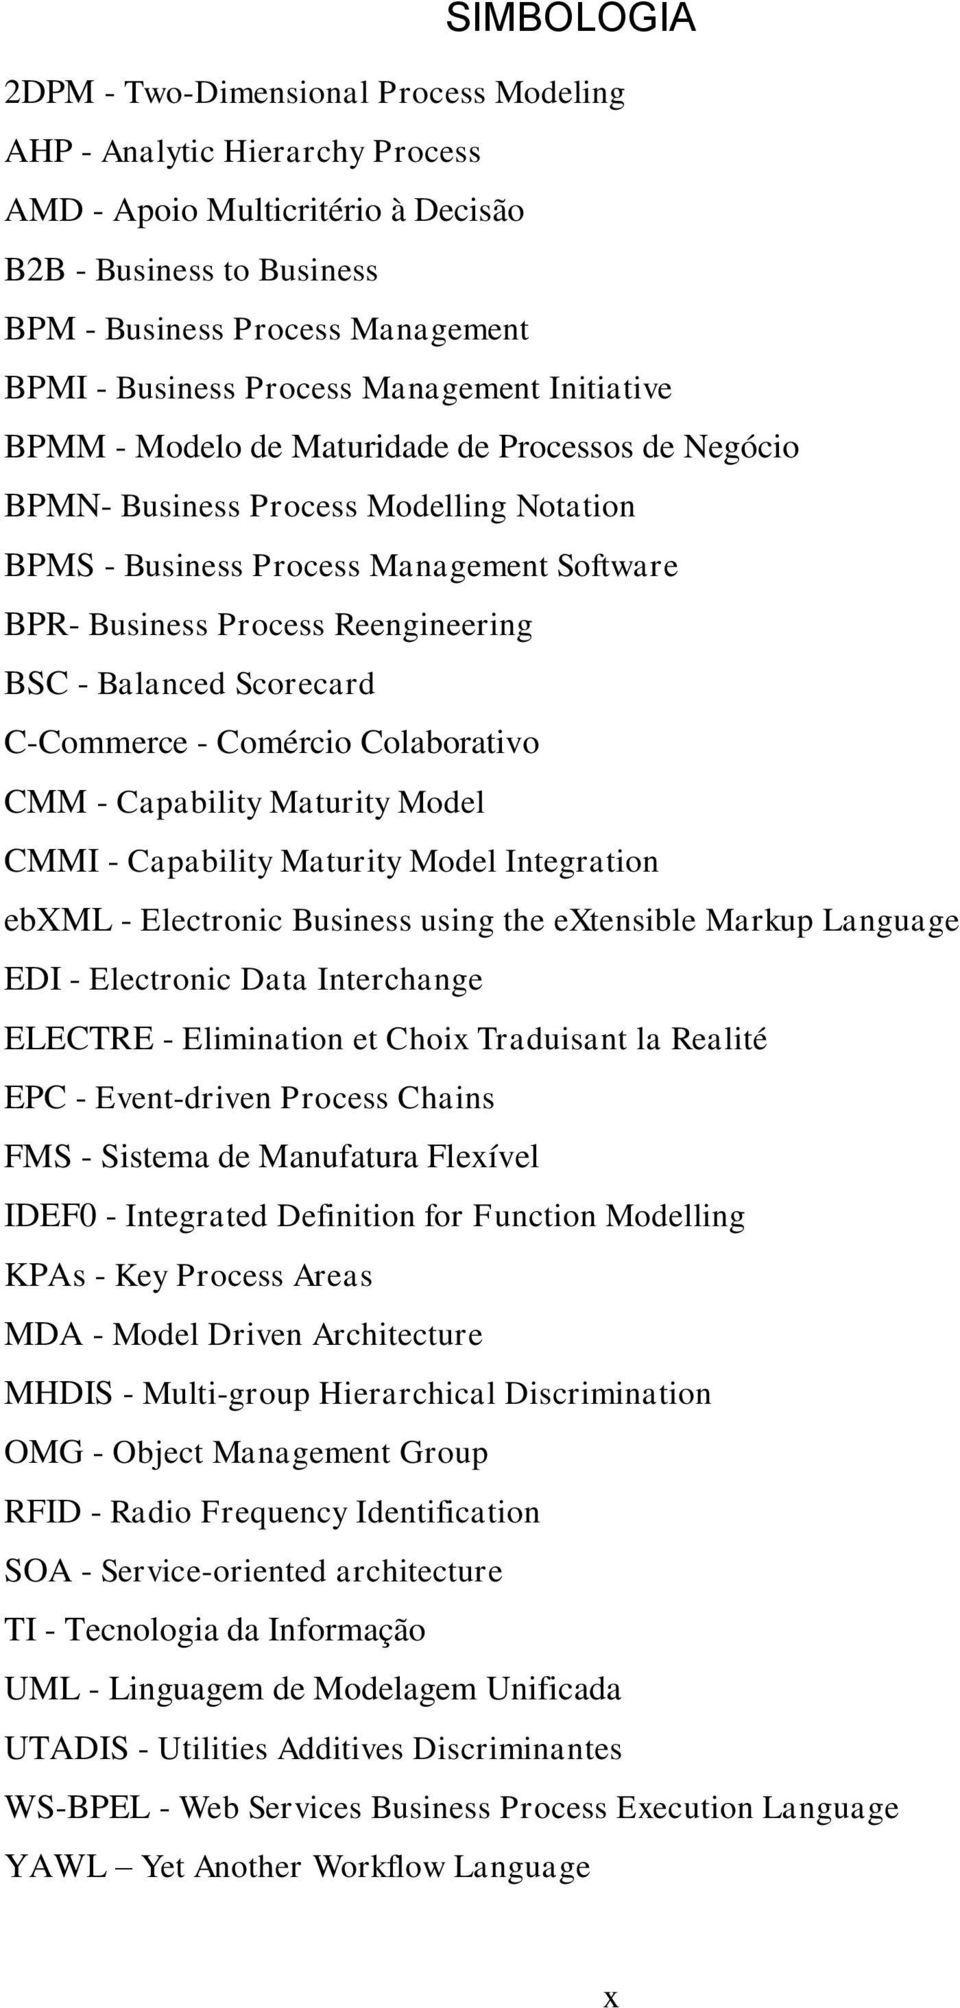 Reengineering BSC - Balanced Scorecard C-Commerce - Comércio Colaborativo CMM - Capability Maturity Model CMMI - Capability Maturity Model Integration ebxml - Electronic Business using the extensible